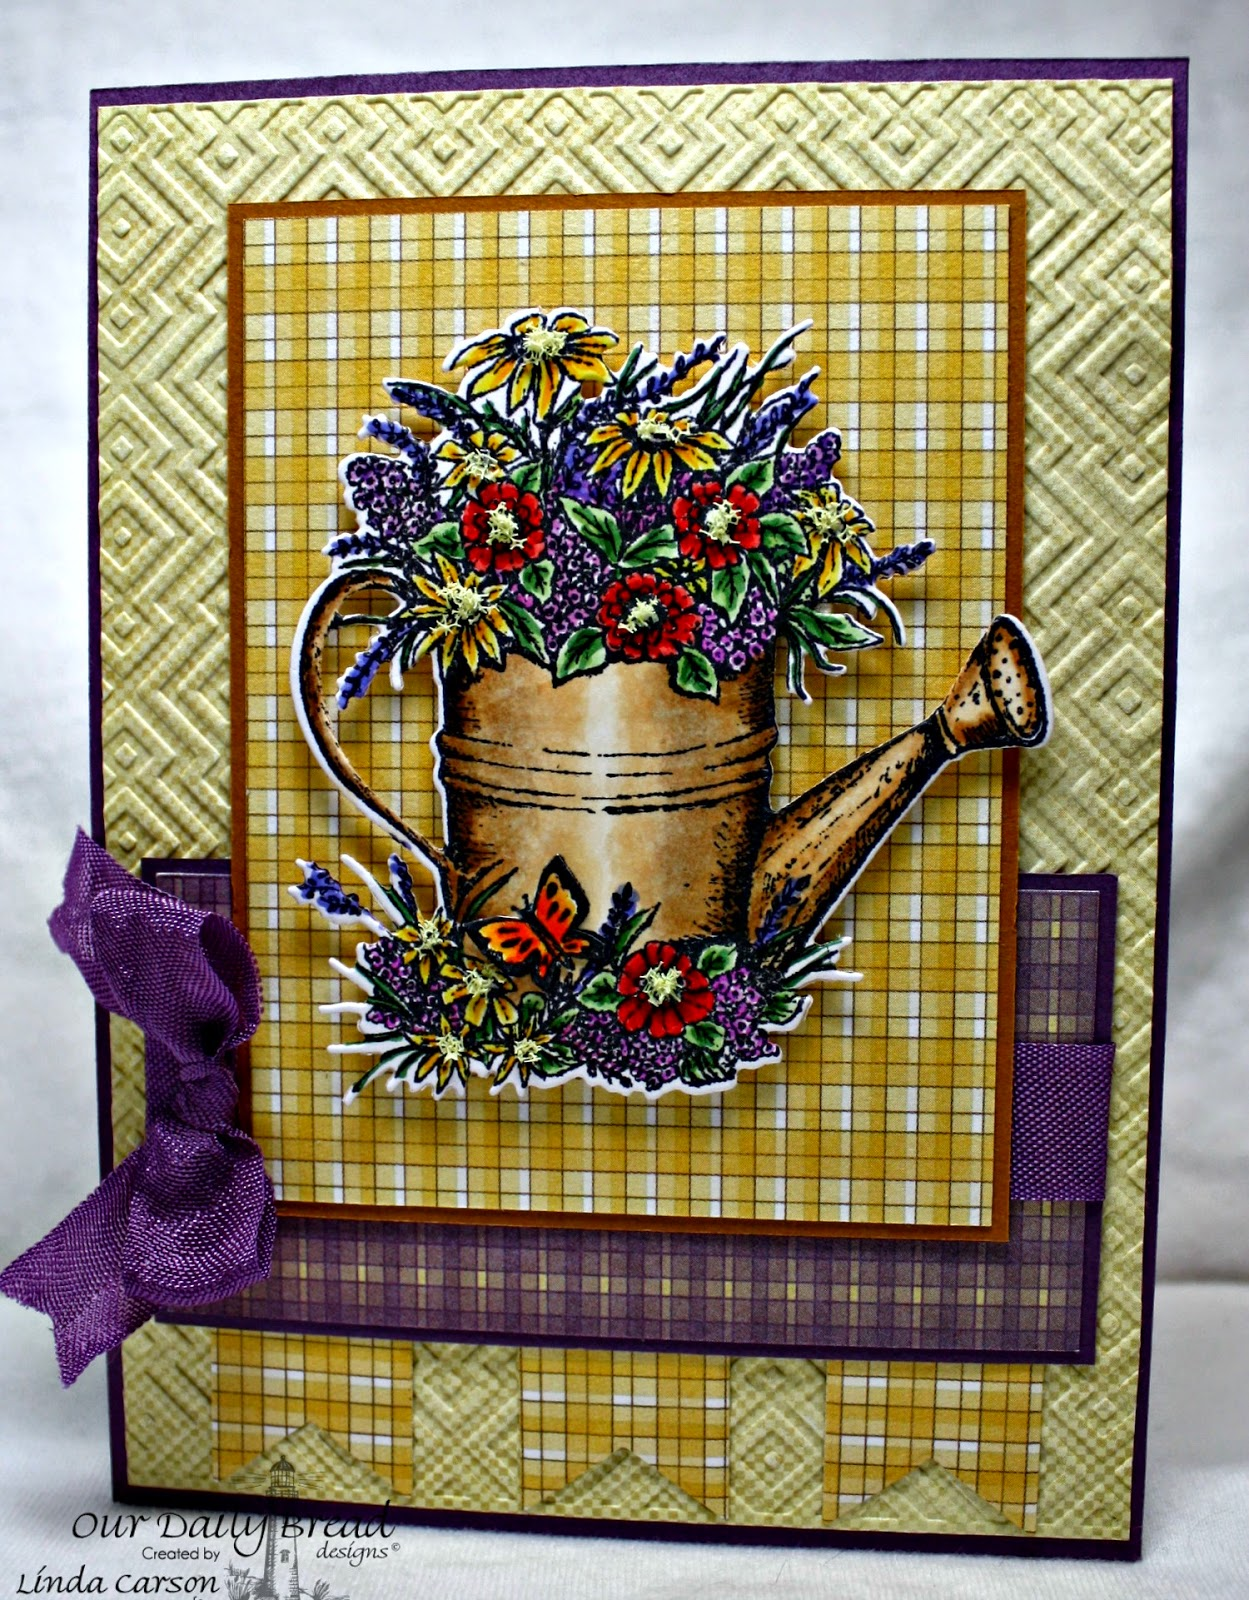 Our Daily Bread Designs, Happy Birthday, Watering Can die, Pennant die, designer Linda Carson